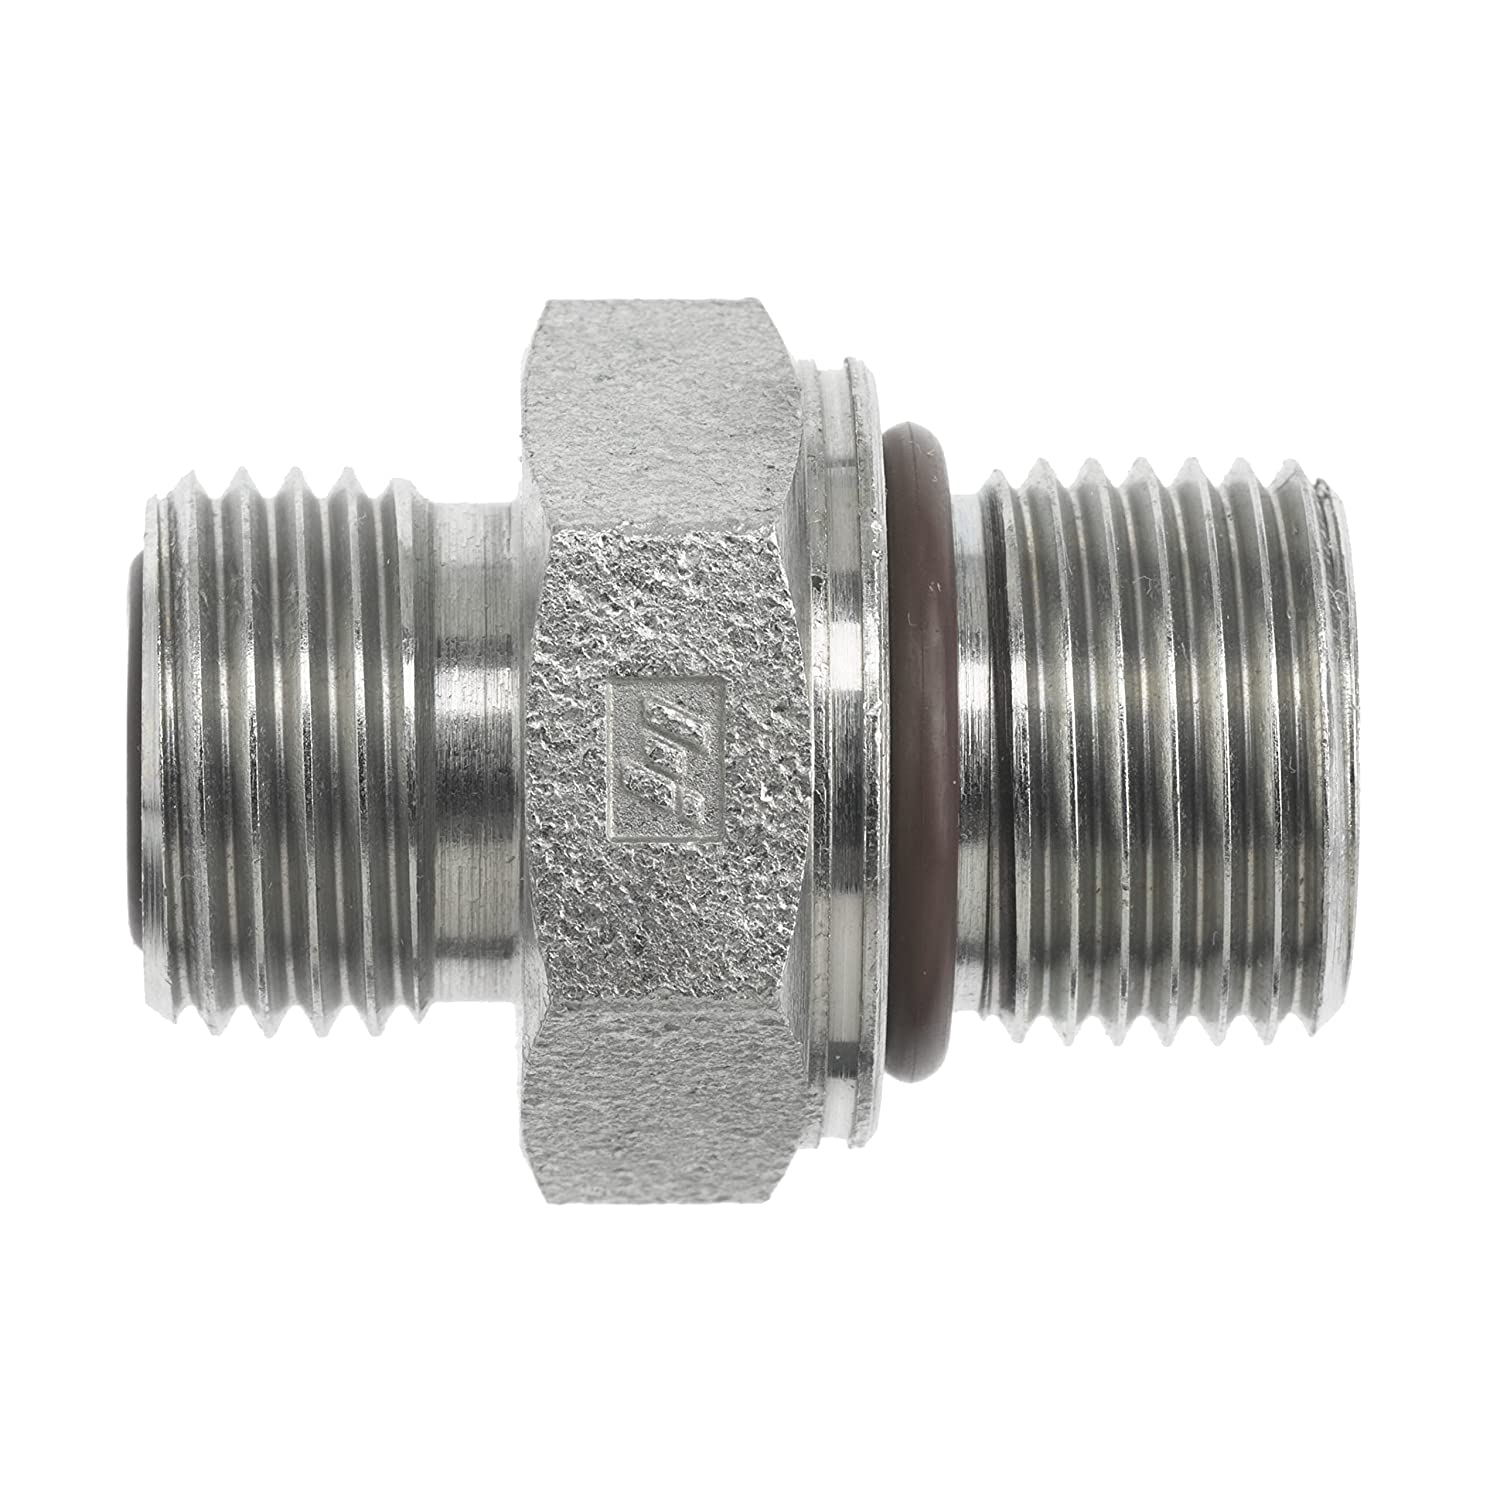 1-14 NPT Thread Brennan Industries FS7640-10-22-O Steel ISO6149-2 Straight O-Ring Face Seal Fitting 5//8 Male Face Seal x 5//8 Male Metric O-Ring Boss 1-14 NPT Thread 5//8 Male Face Seal x 5//8 Male Metric O-Ring Boss Inc.